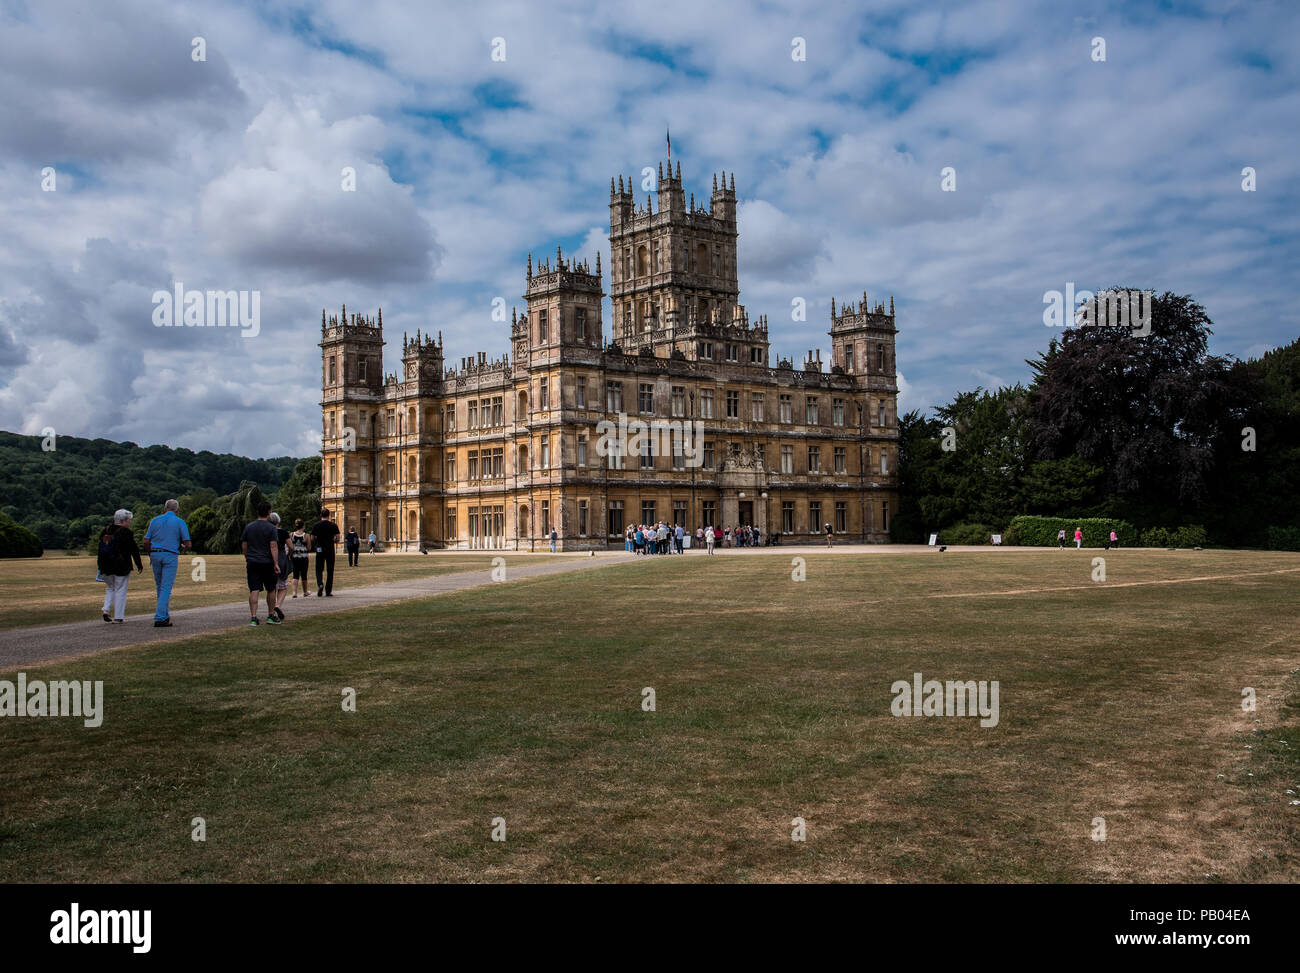 Newbury, England--July 18, 2018. Highclere Castle is on a 5,000 acre estate in Hampshire England, and is the location for Downton Abbey. - Stock Image